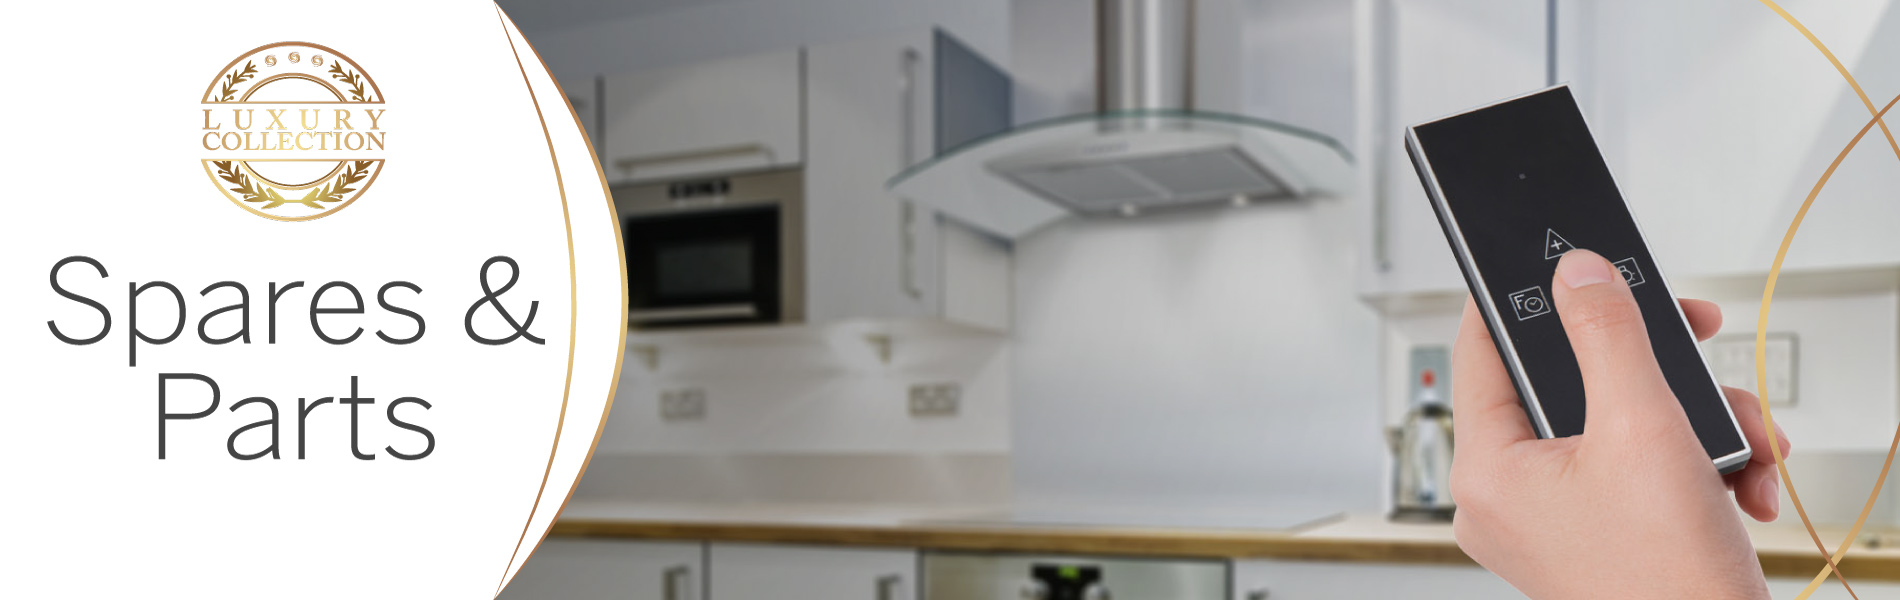 Cooker Hood Ducting 150mm